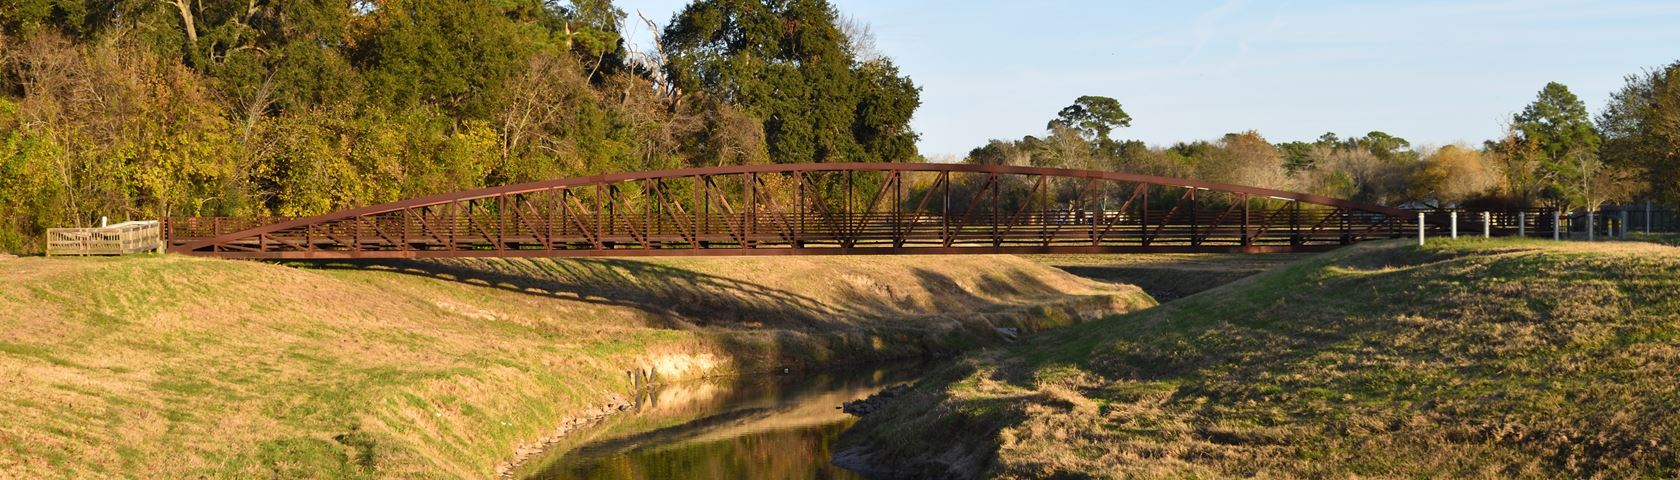 Red Bridge Over Bayou